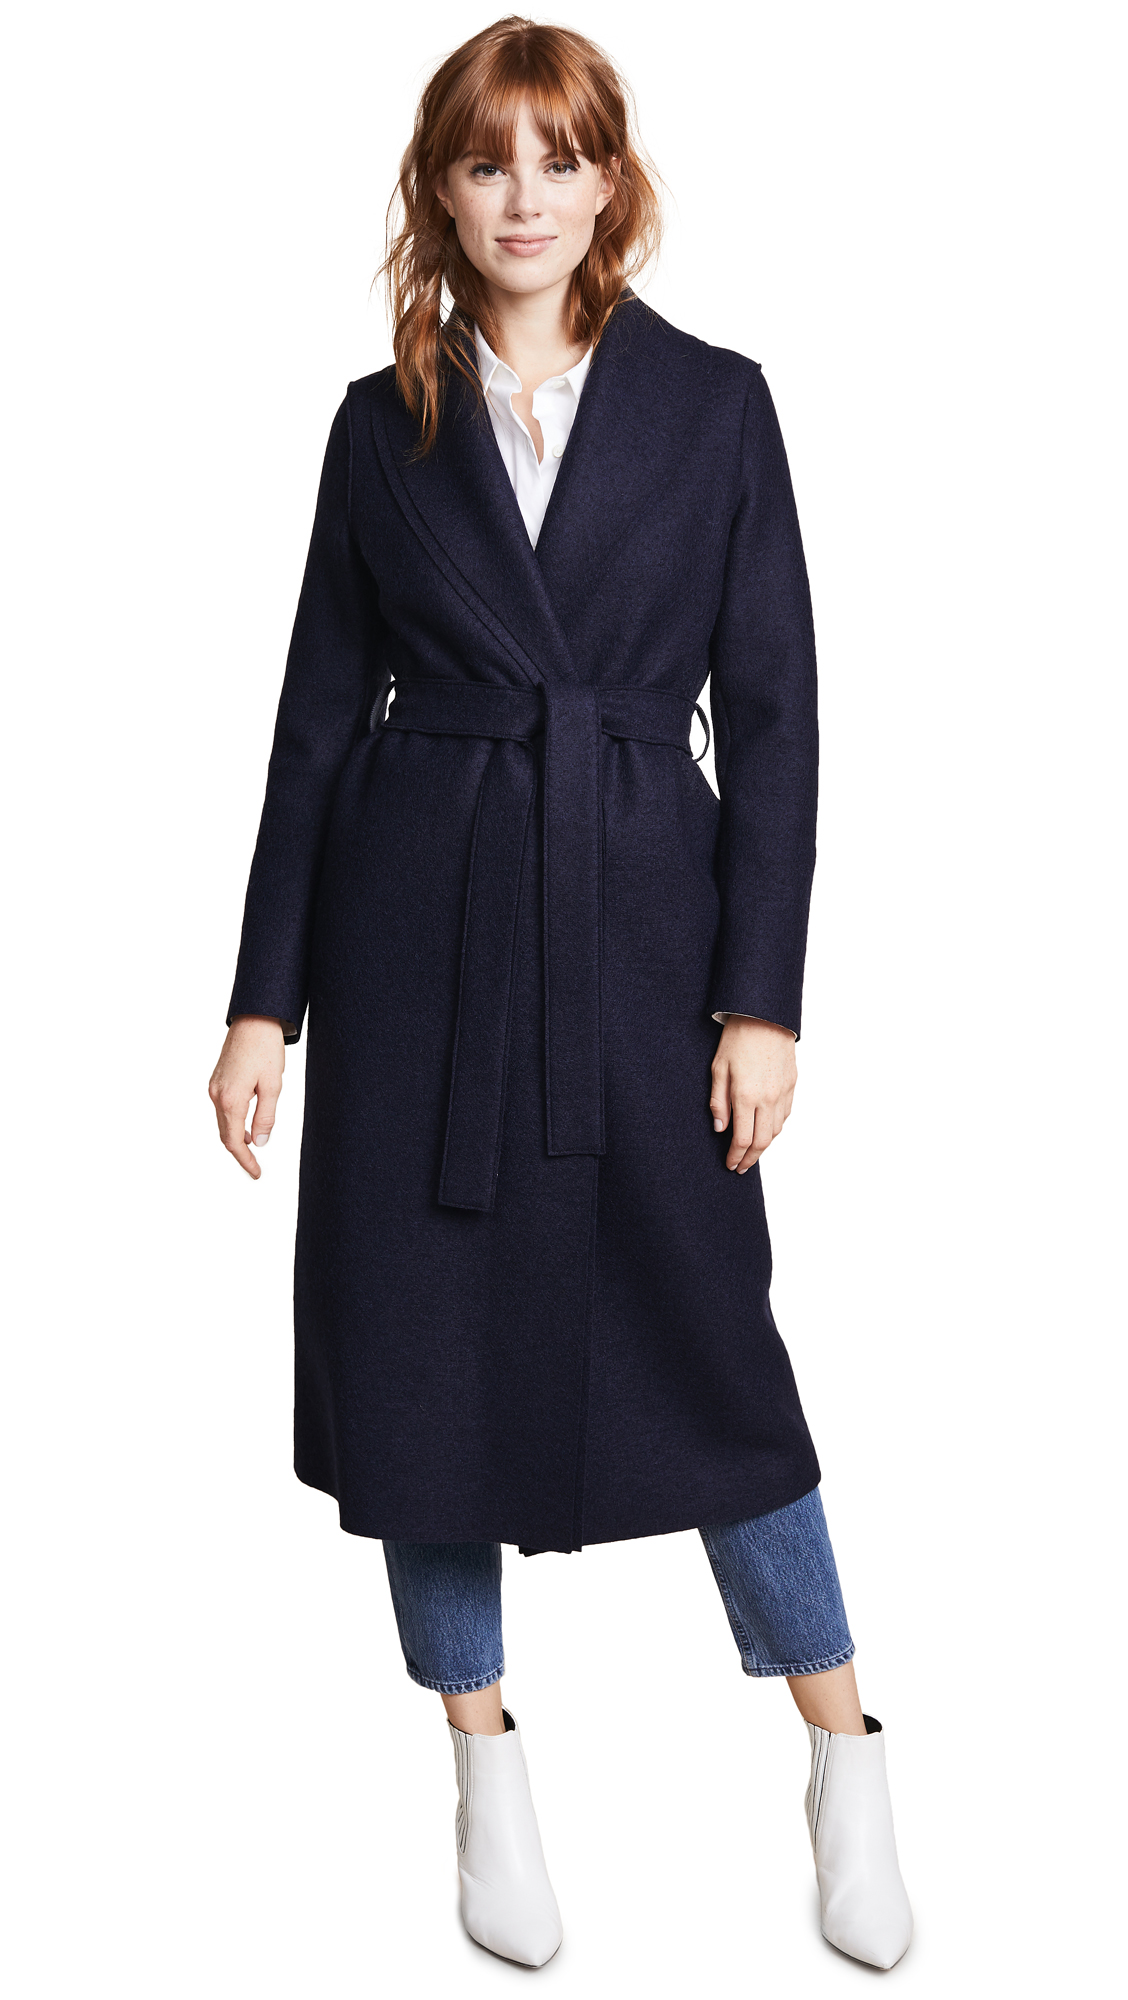 Harris Wharf London Gown Coat - Navy Blue